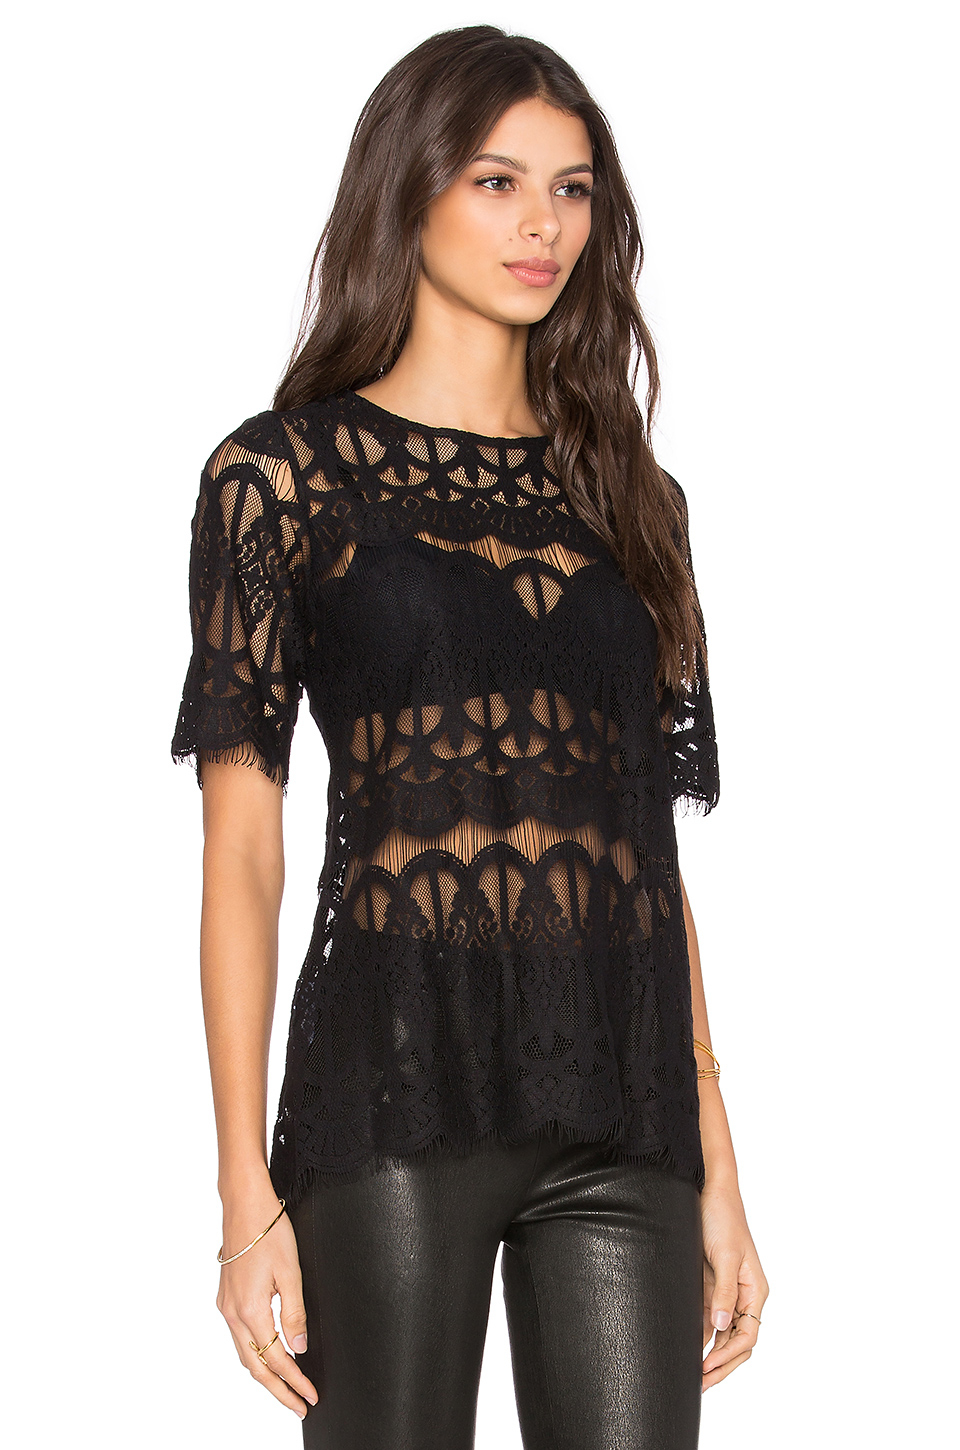 Check our latest styles of Tops such as Lace at REVOLVE with free day shipping and returns, 30 day price match guarantee.